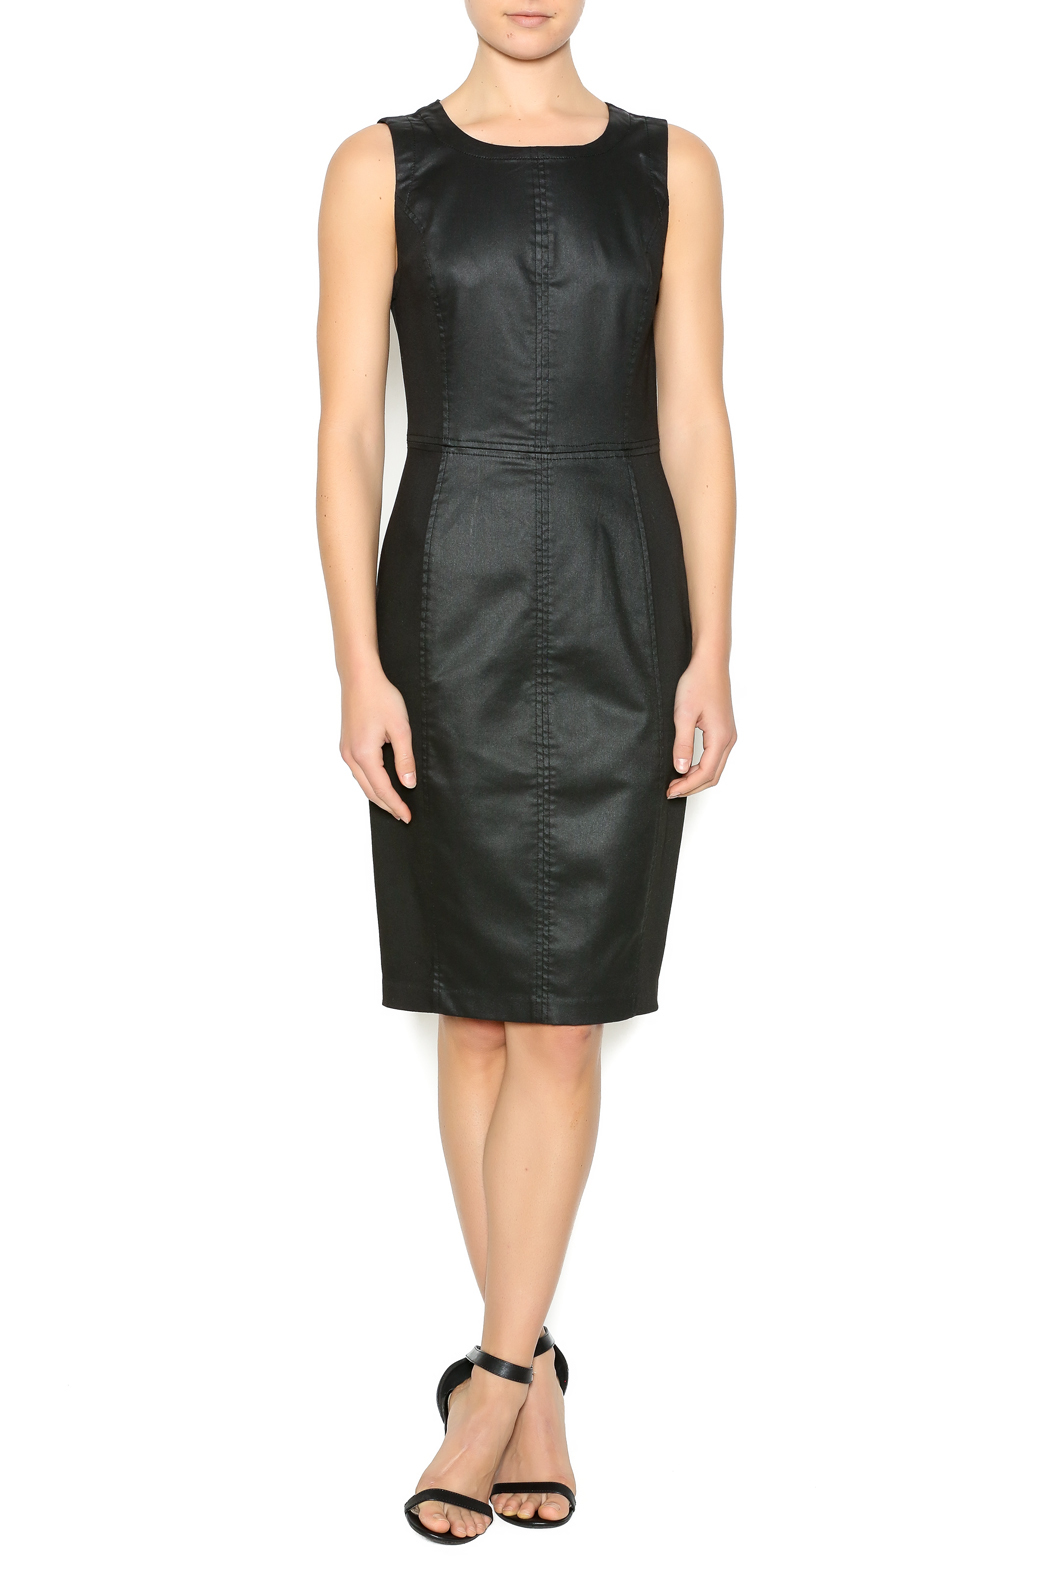 Level 99 Hourglass Dress from New Jersey by JAX Boutique — Shoptiques